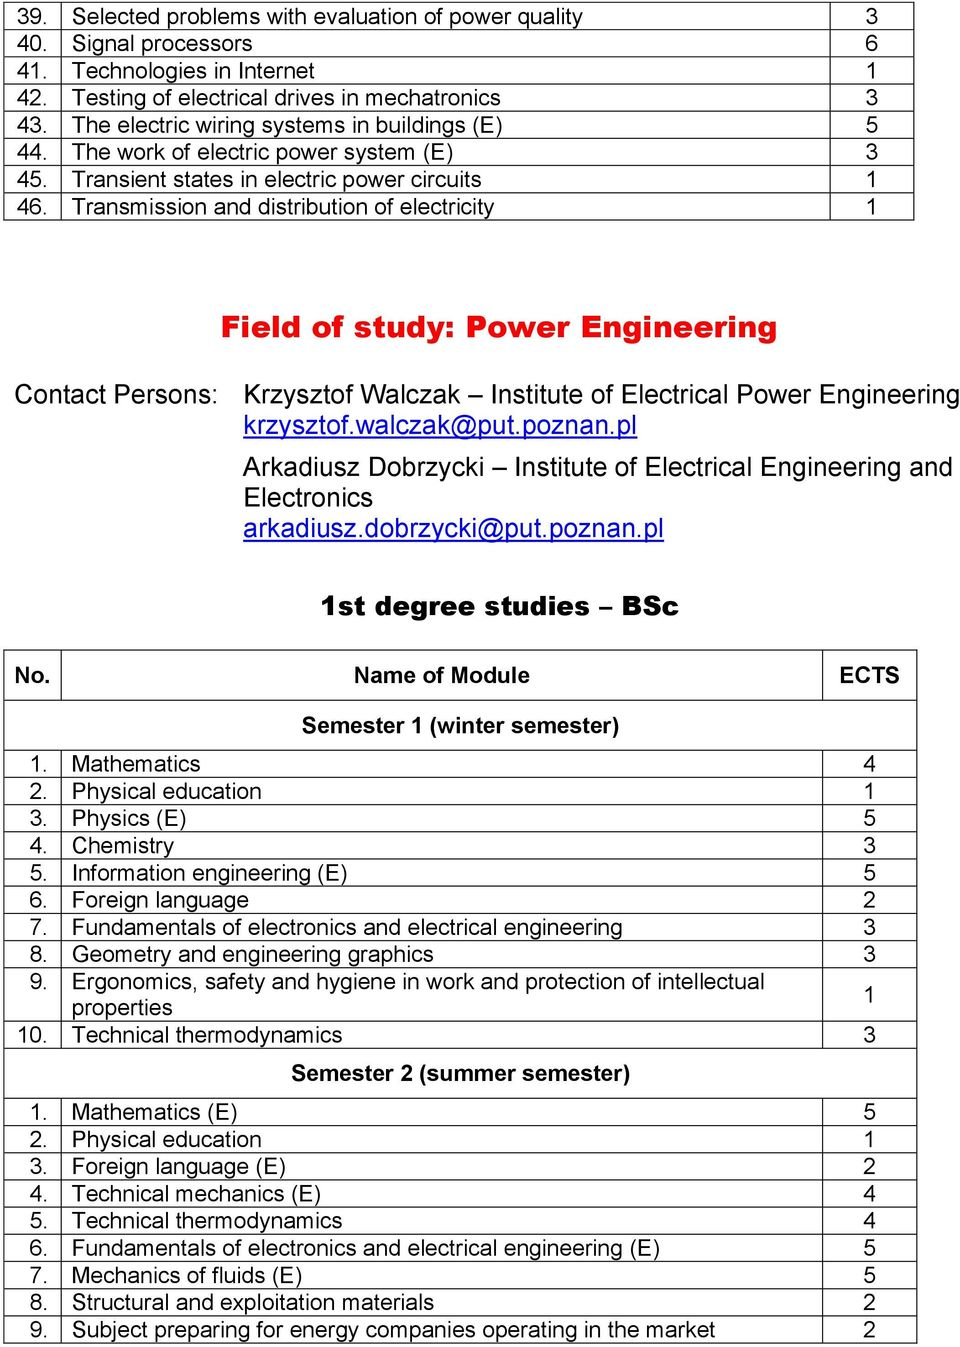 Transmission and distribution of electricity 1 Field of study: Power Engineering Contact Persons: Krzysztof Walczak Institute of Electrical Power Engineering krzysztof.walczak@put.poznan.